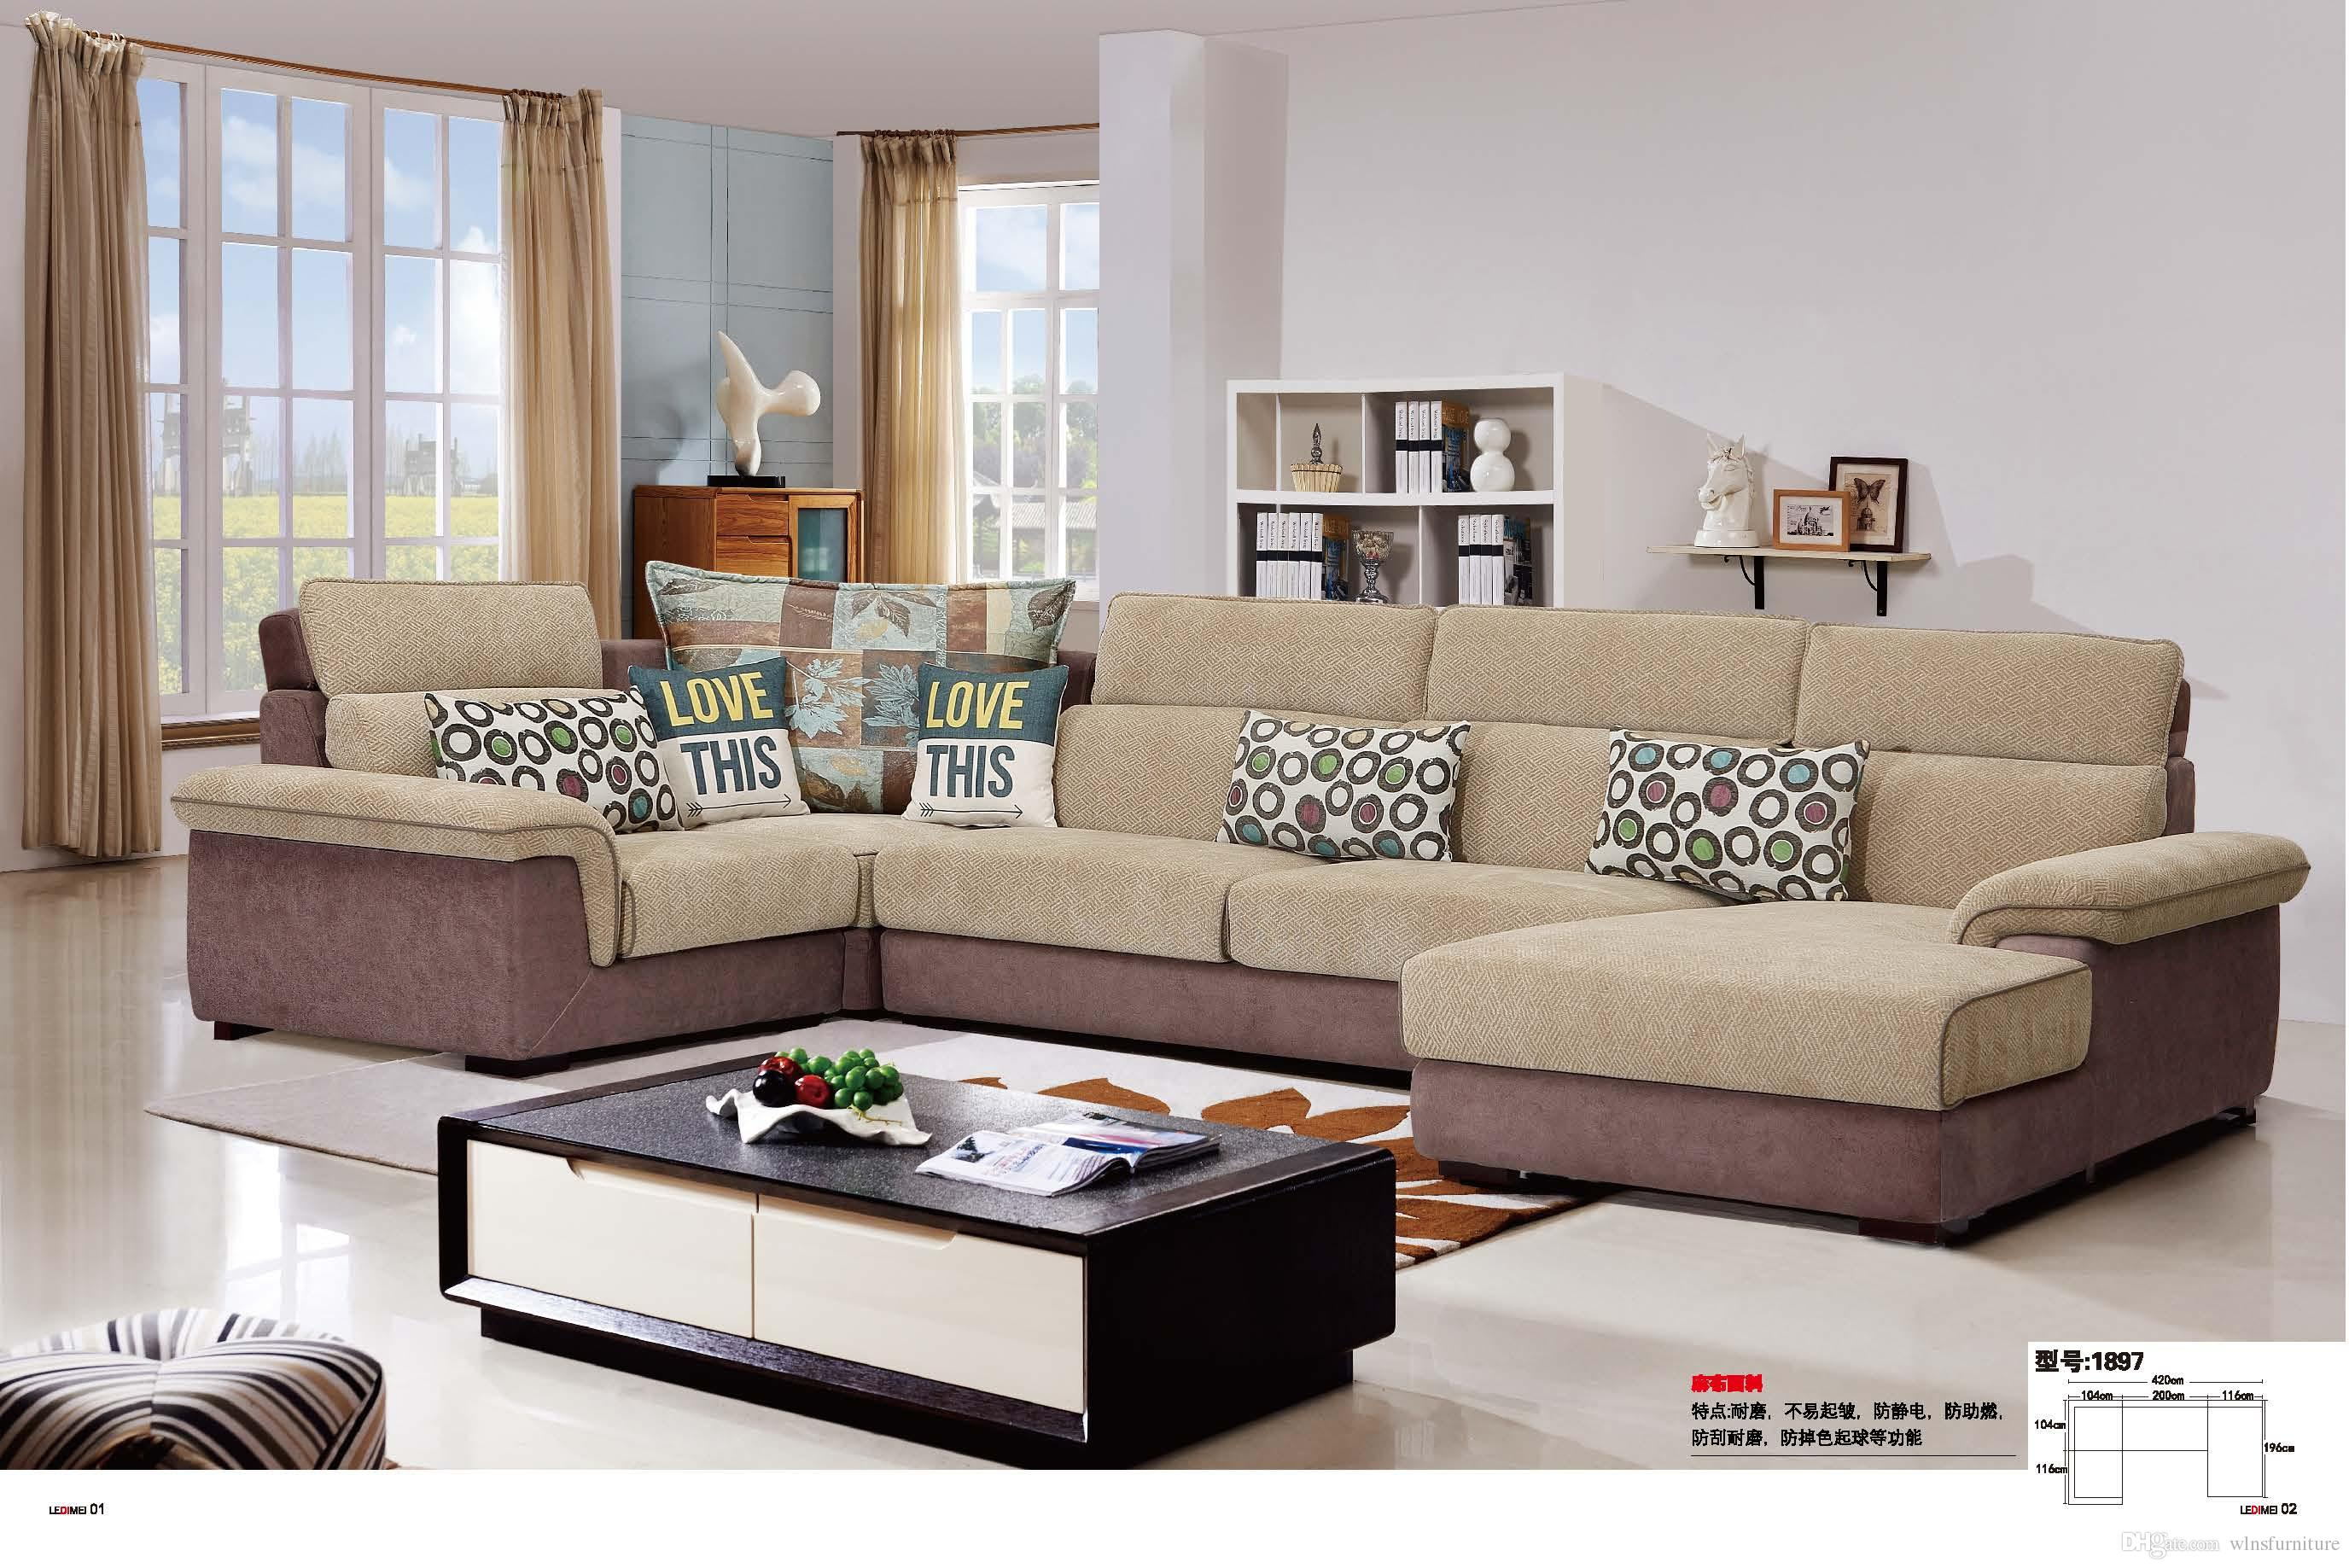 living room fabrics green rug 2019 modern fabric sofa u shape sectional anti bacterial comfortable soft set from wlnsfurniture 899 5 dhgate com